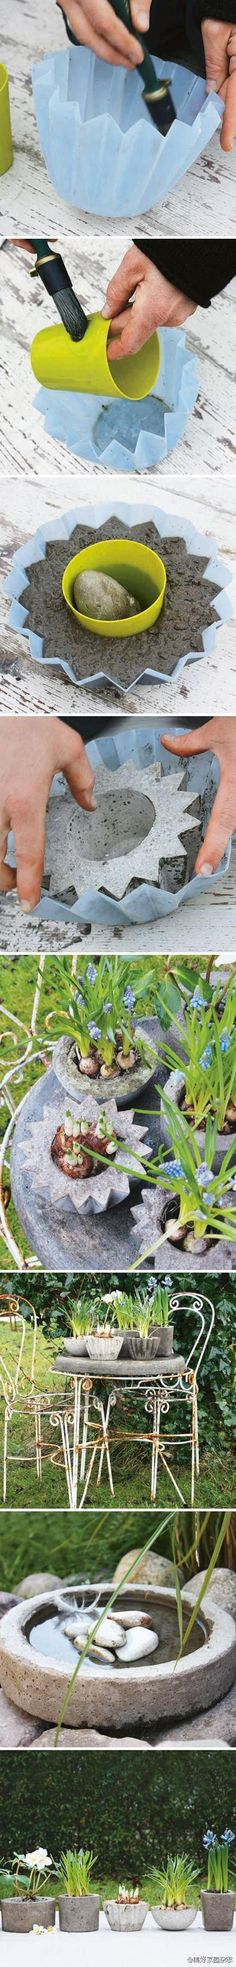 11 Great Summer Garden Ideas | FB TroublemakersFB Troublemakers